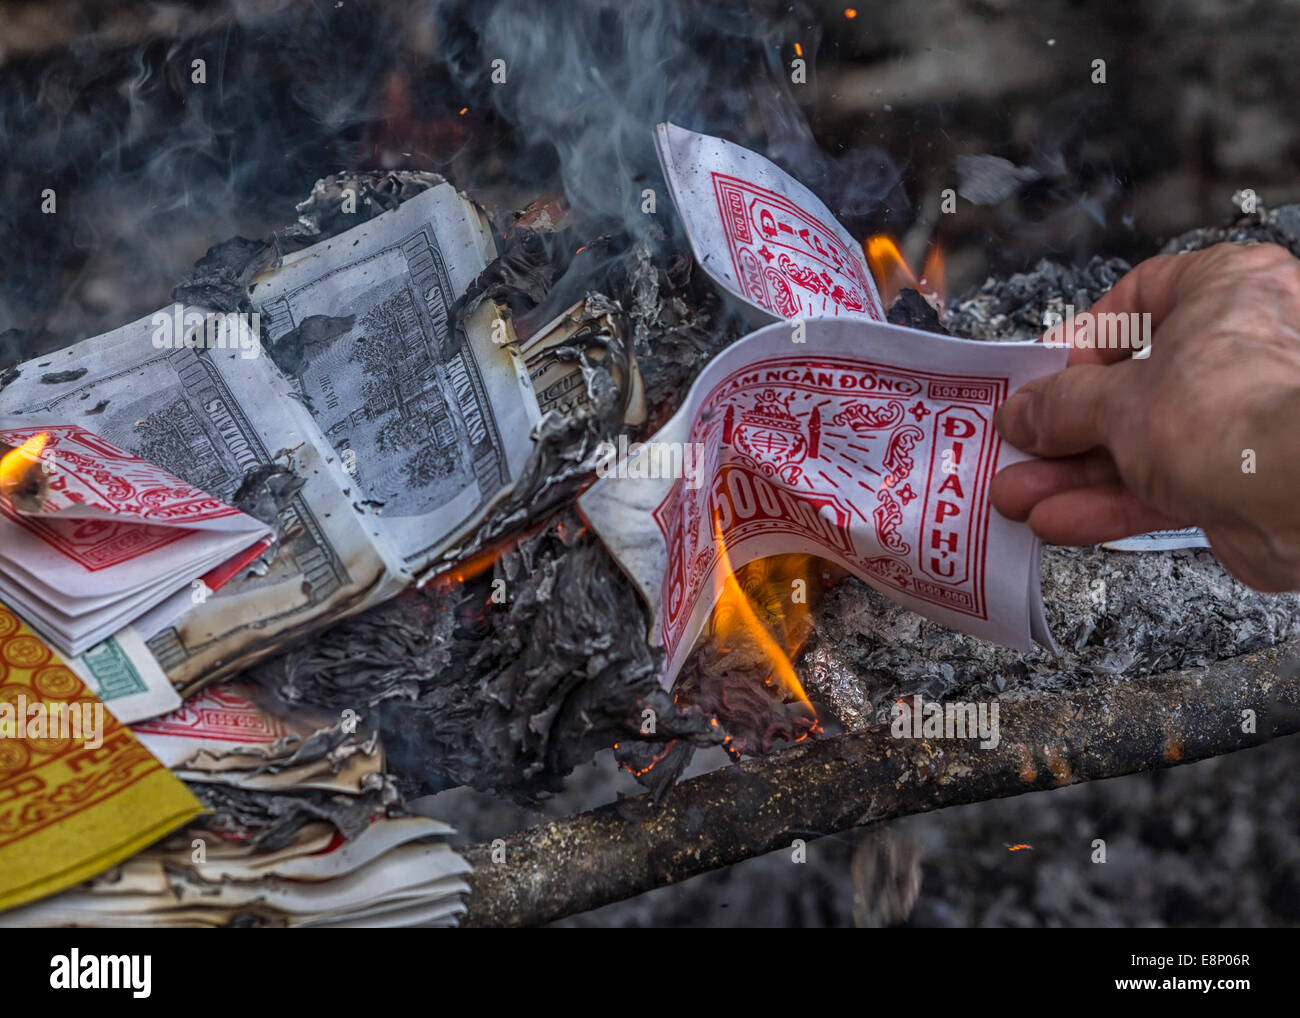 Bundles of money are burned to please the spirits. Stock Photo